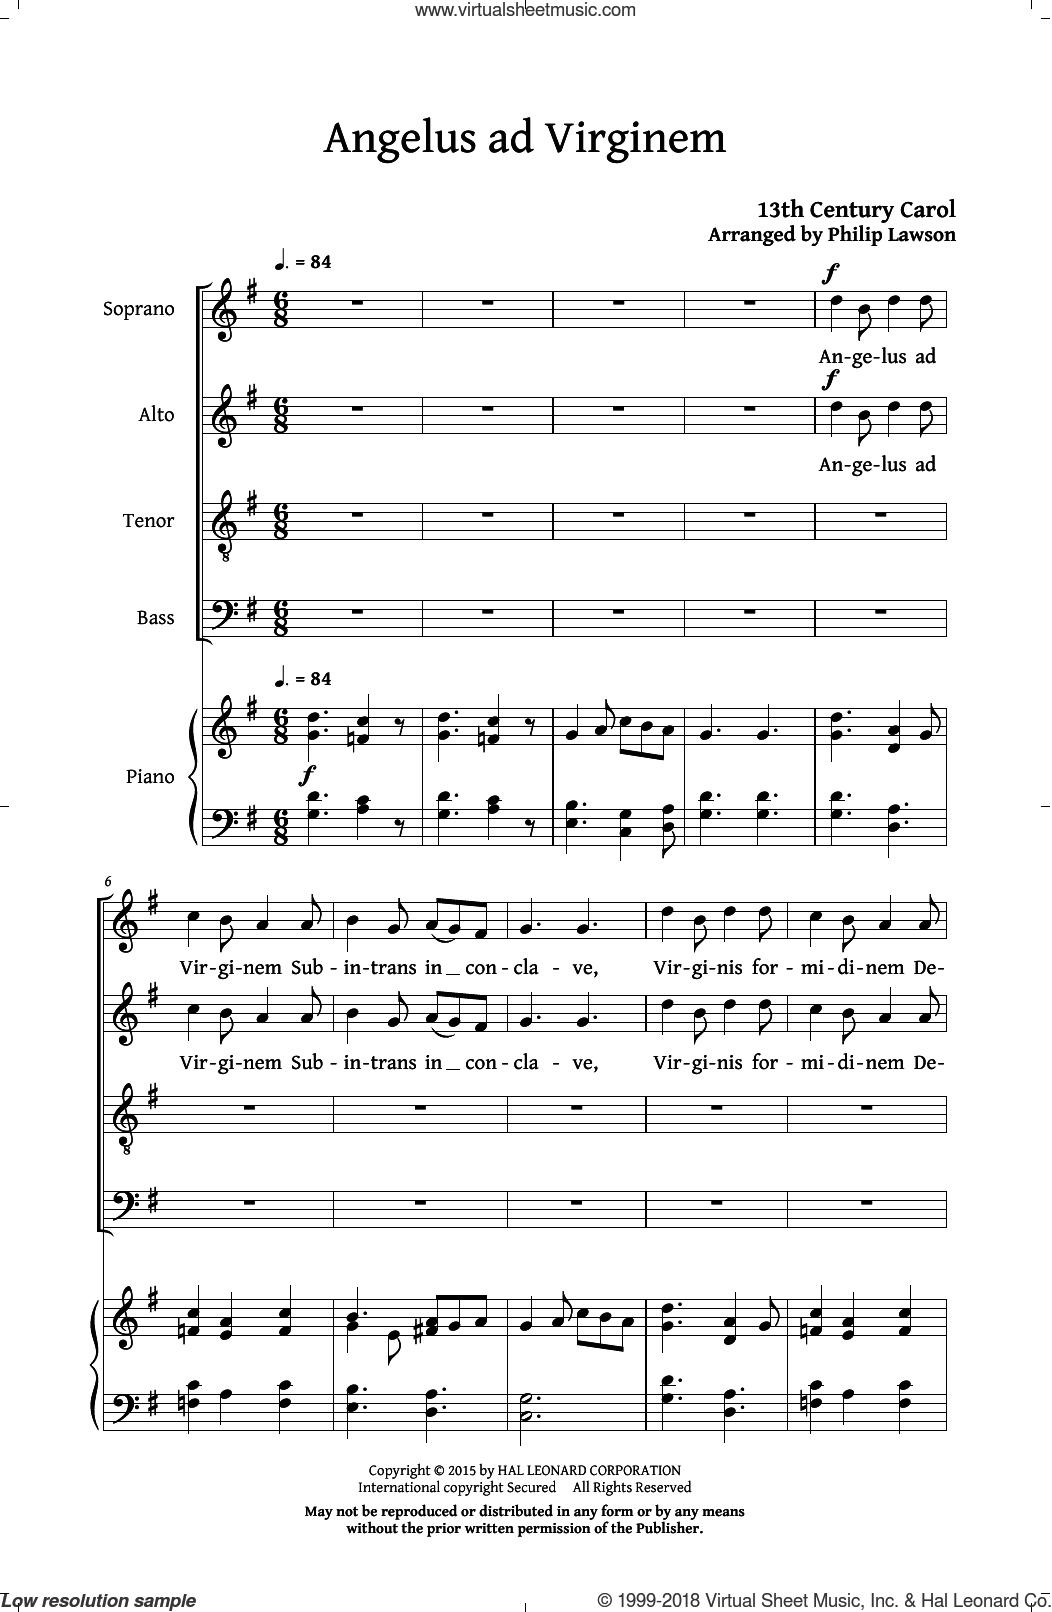 Angelus Ad Virginem sheet music for choir (SATB: soprano, alto, tenor, bass) by Philip Lawson and 13th Century Carol, intermediate skill level